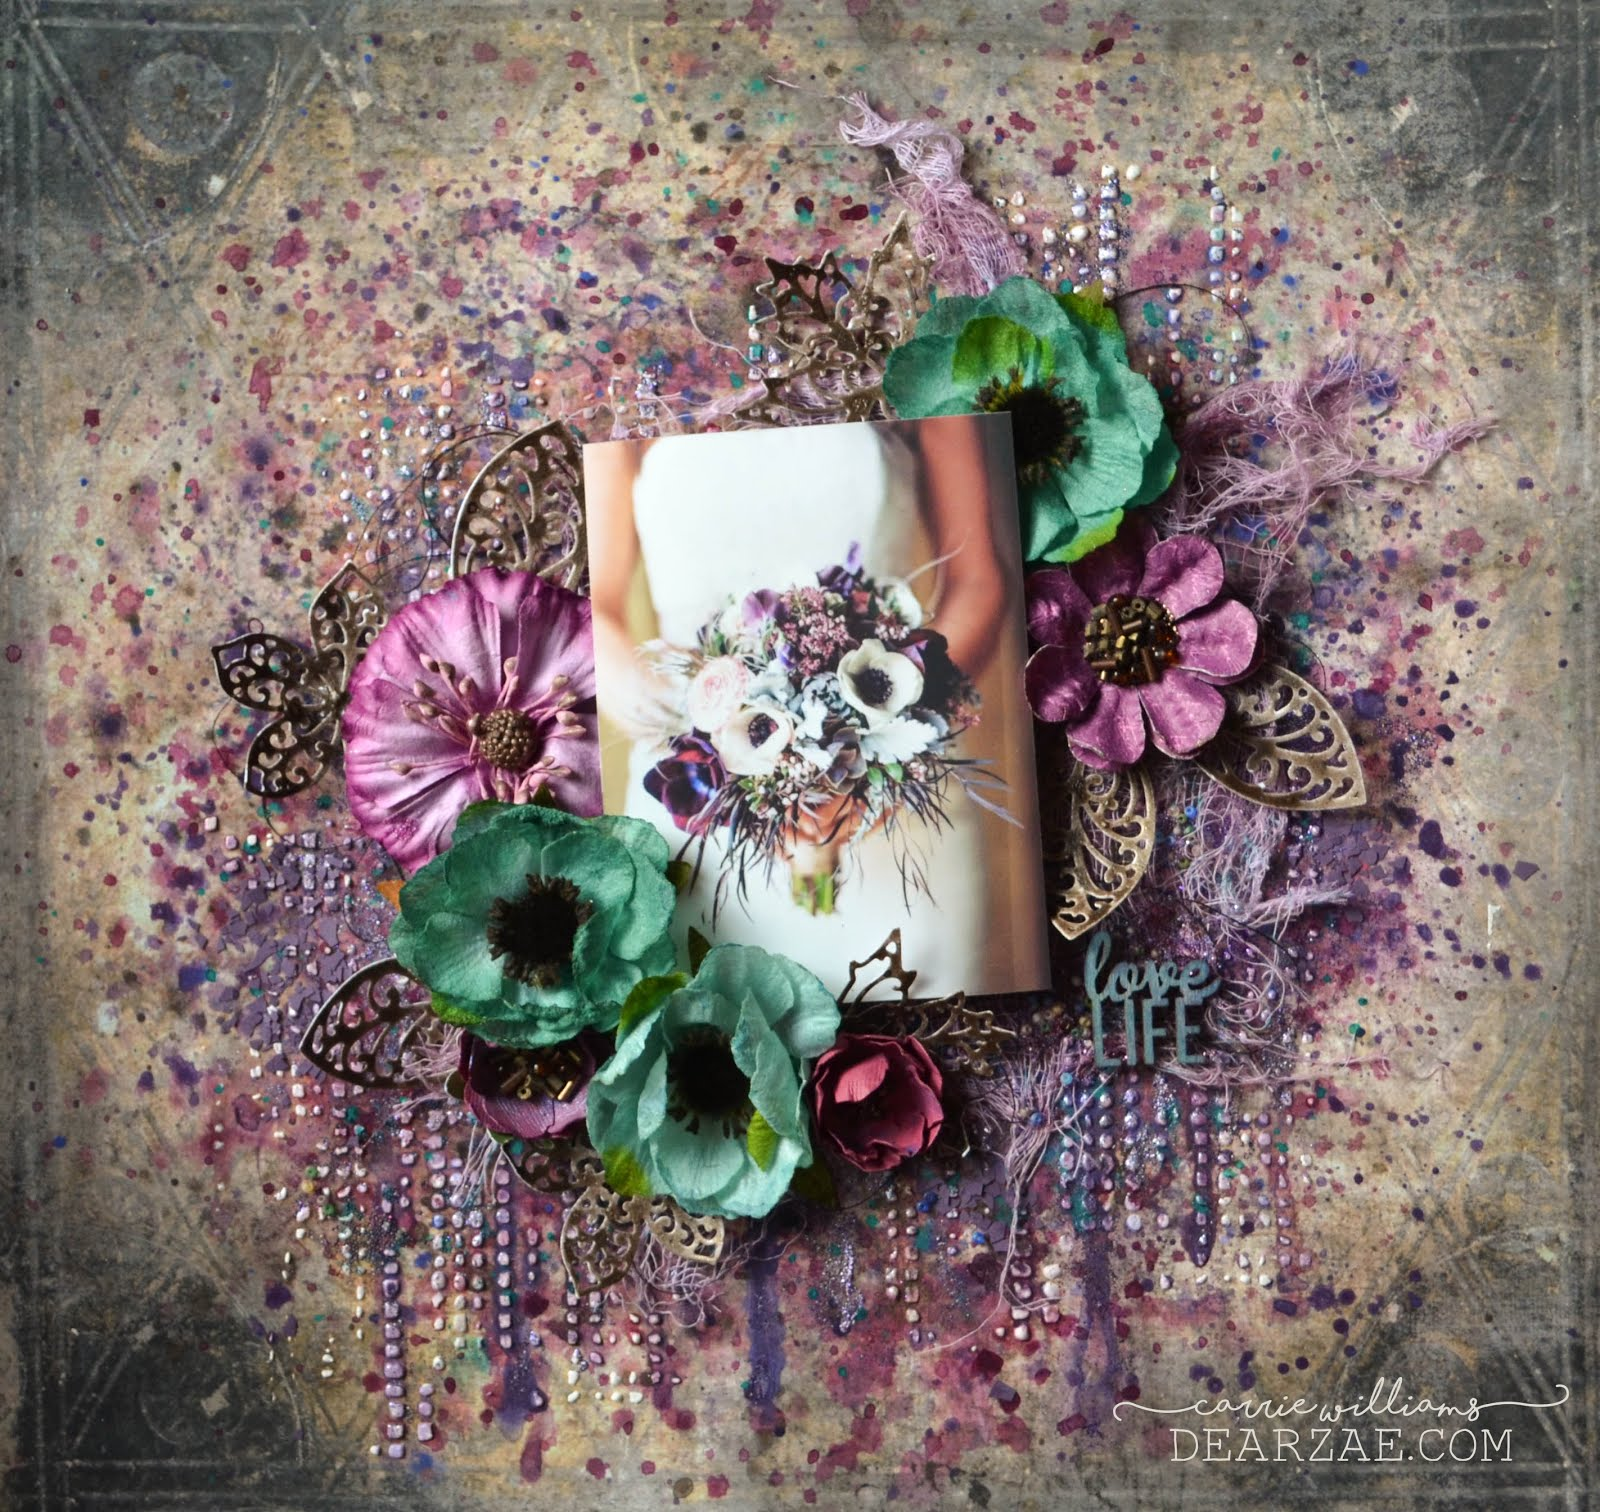 Mixed media scrapbook layout in purple and teal blue, Prima Timeless memories forever paper and prima moroccan dies, and Petaloo anemones against a background using texture paste, stencils, and Tim Holtz distress inks and sprays